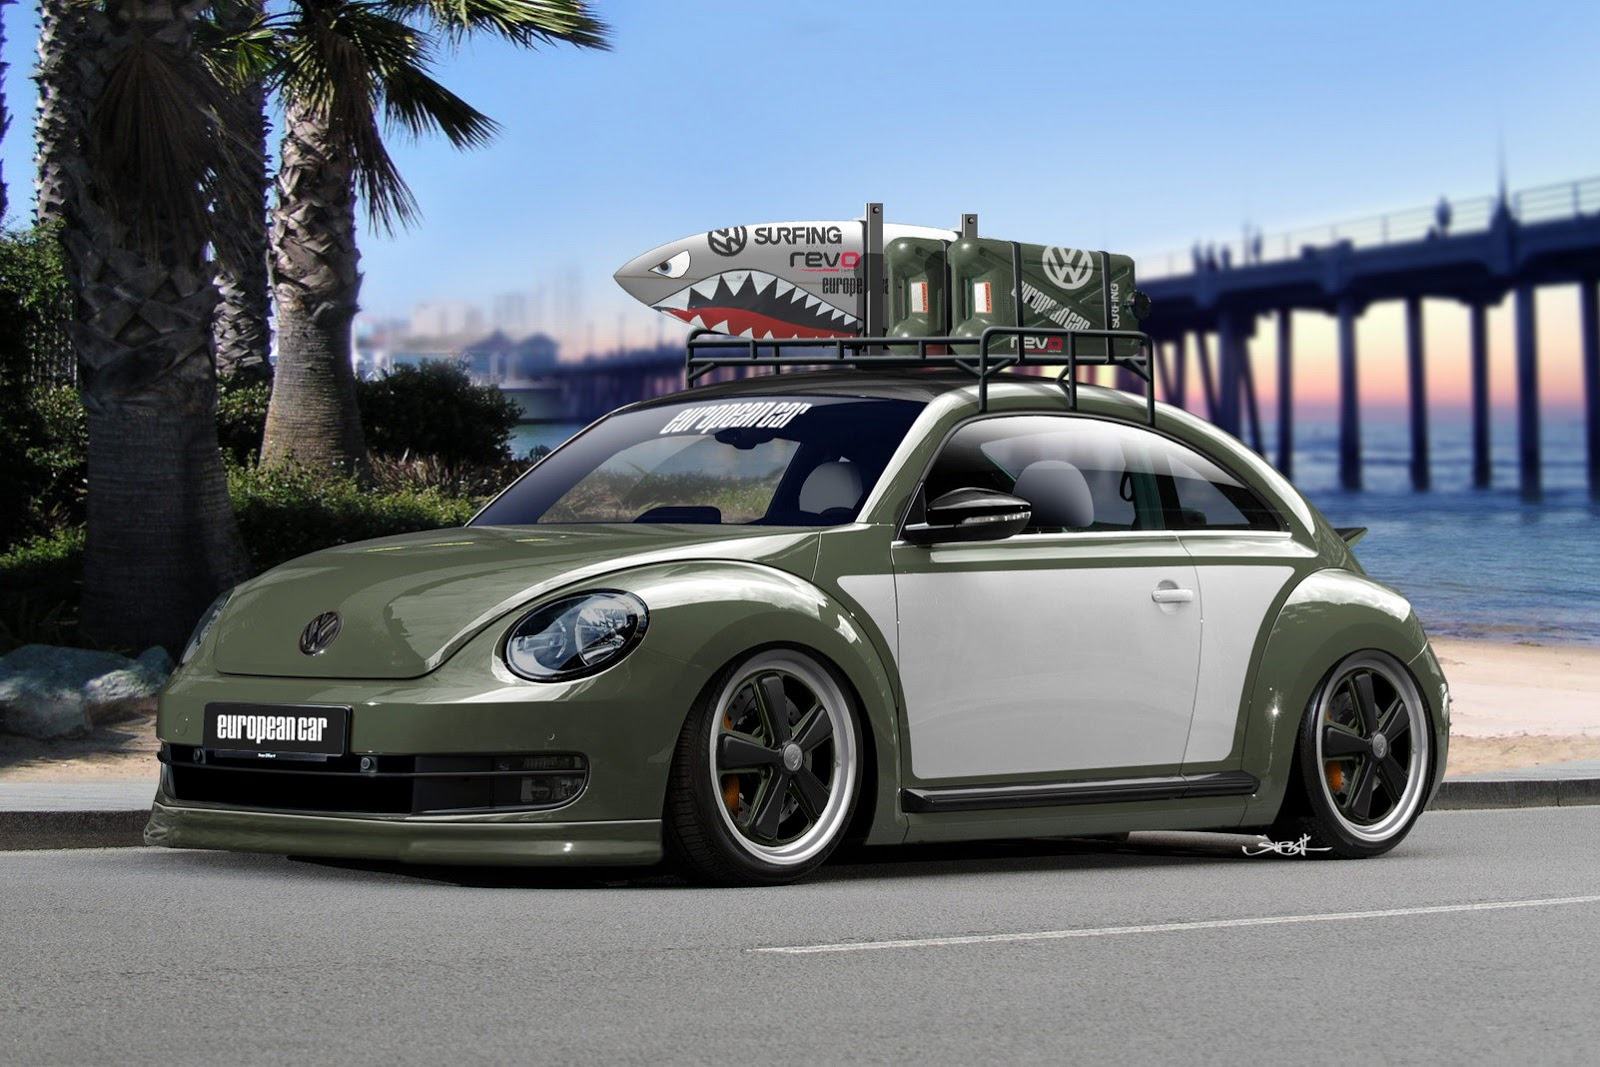 Volkswagen New Beetle at SEMA Wallpaper Backgrounds Wallpaper